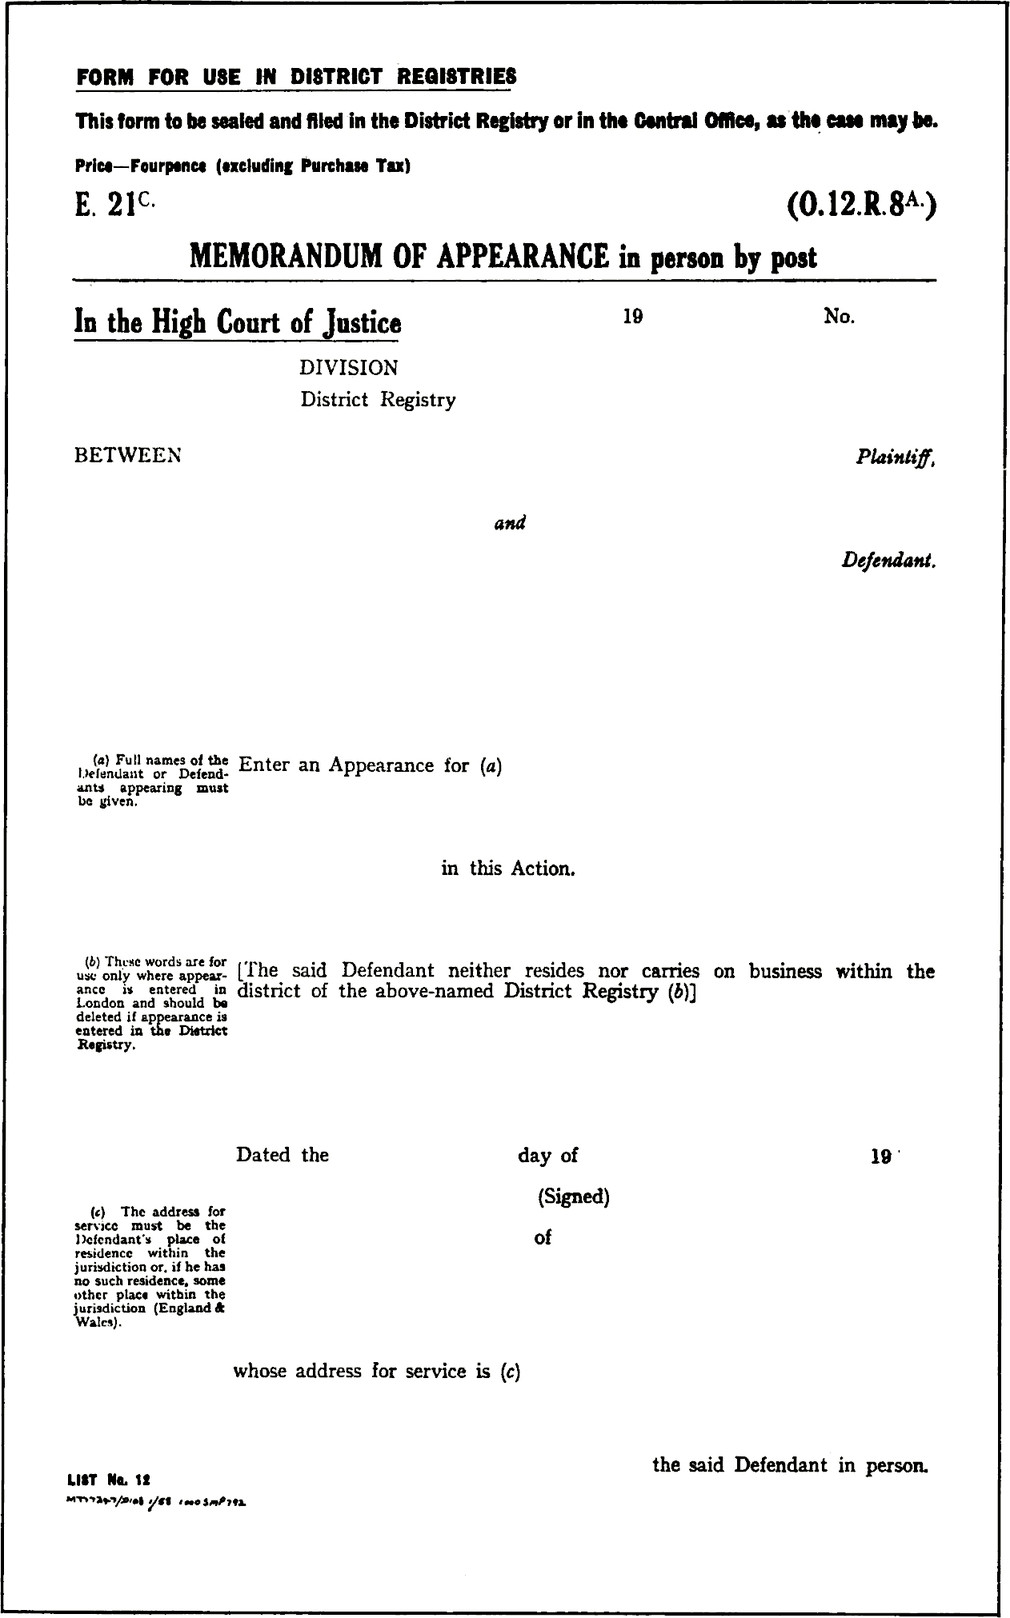 Form with title MEMORANDUM OF APPEARANCE in person by post, (0.12.R.8A), E. 21C. FORM FOR USE IN DISTRICT REGISTRIES. This form to be sealed and filed in the District Registry or in the Central Office, as the case may be. Price—Fourpence (excluding Purchase Tax). In the High Court of Justice. 19: blank field. No.: blank field. Division: blank field. District Registry: blank field. Between, blank field, Plaintiff and, blank field, Defendant. Enter an Appearance for (a), blank field, in this Action. (a) Full names of the Defendant or Defendants appearing must be given. \[The said Defendant neither resides nor carries on business within the district of the above-named District Registry (b)\] (b) These words are for use only where appearance is entered in London and should be deleted if appearance is entered in the District Registry. Dated the, blank field, day of blank field, 19. (Signed) blank field, of blank field. whose address for service is (c), blank field, the said Defendant in person. (c) The address for service must be the Defendant's place of residence within the jurisdiction or, if he has no such residence, some other place within the Jurisdiction (England & Wales).